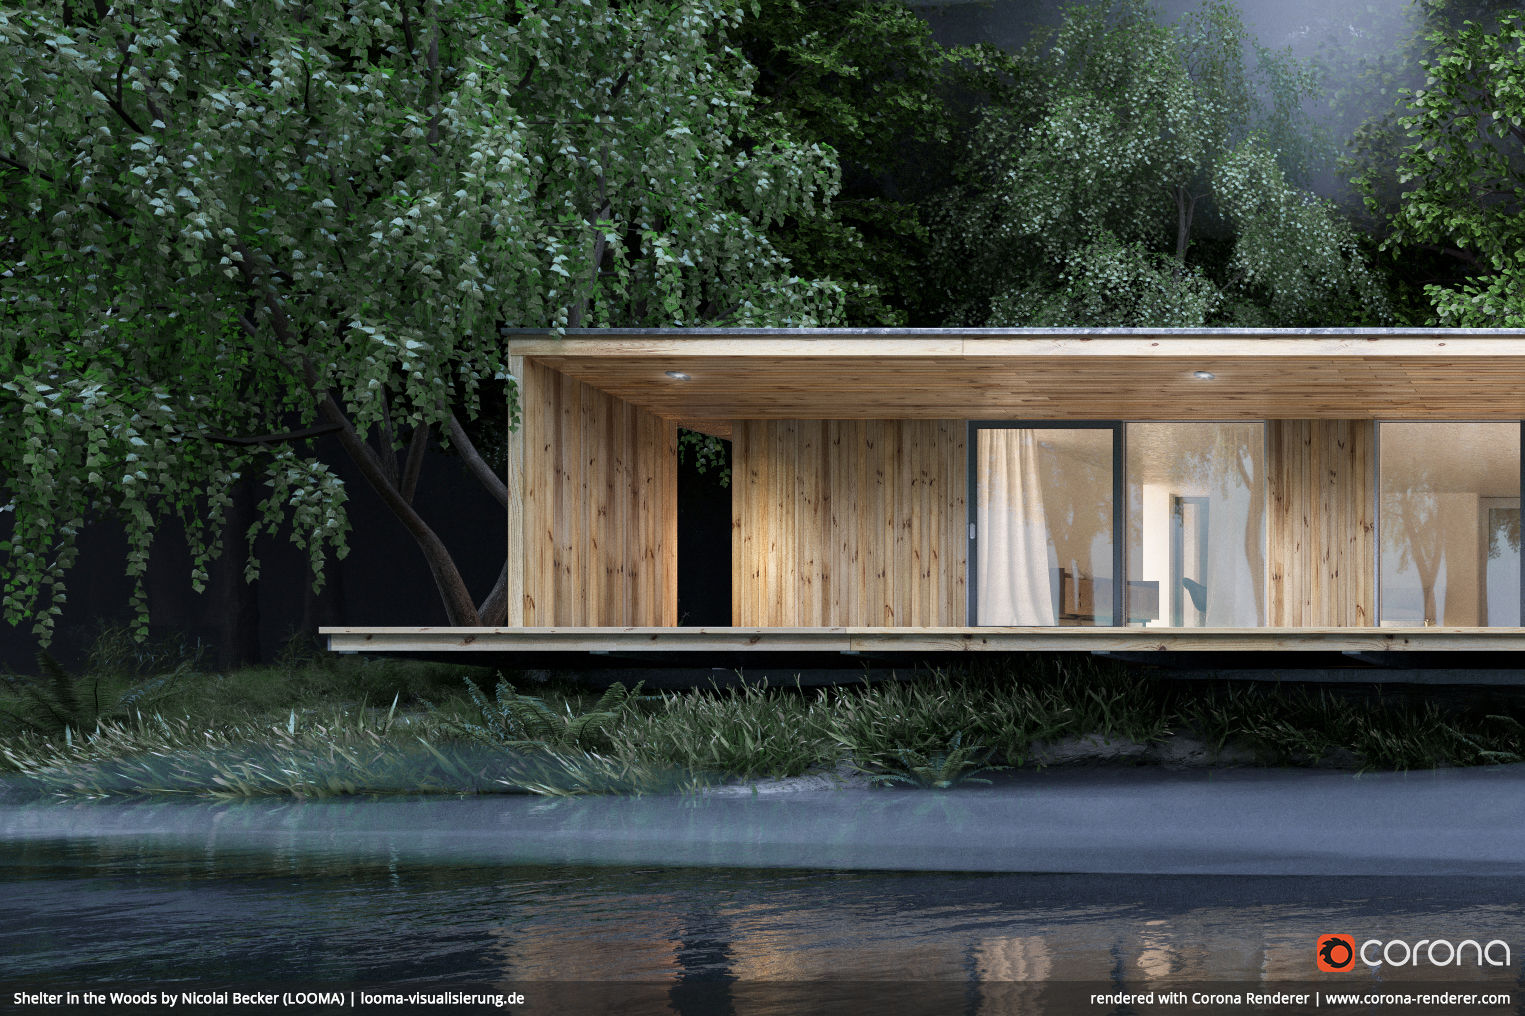 Shelter in the Woods 04 by Nicolai Becker (LOOMA)